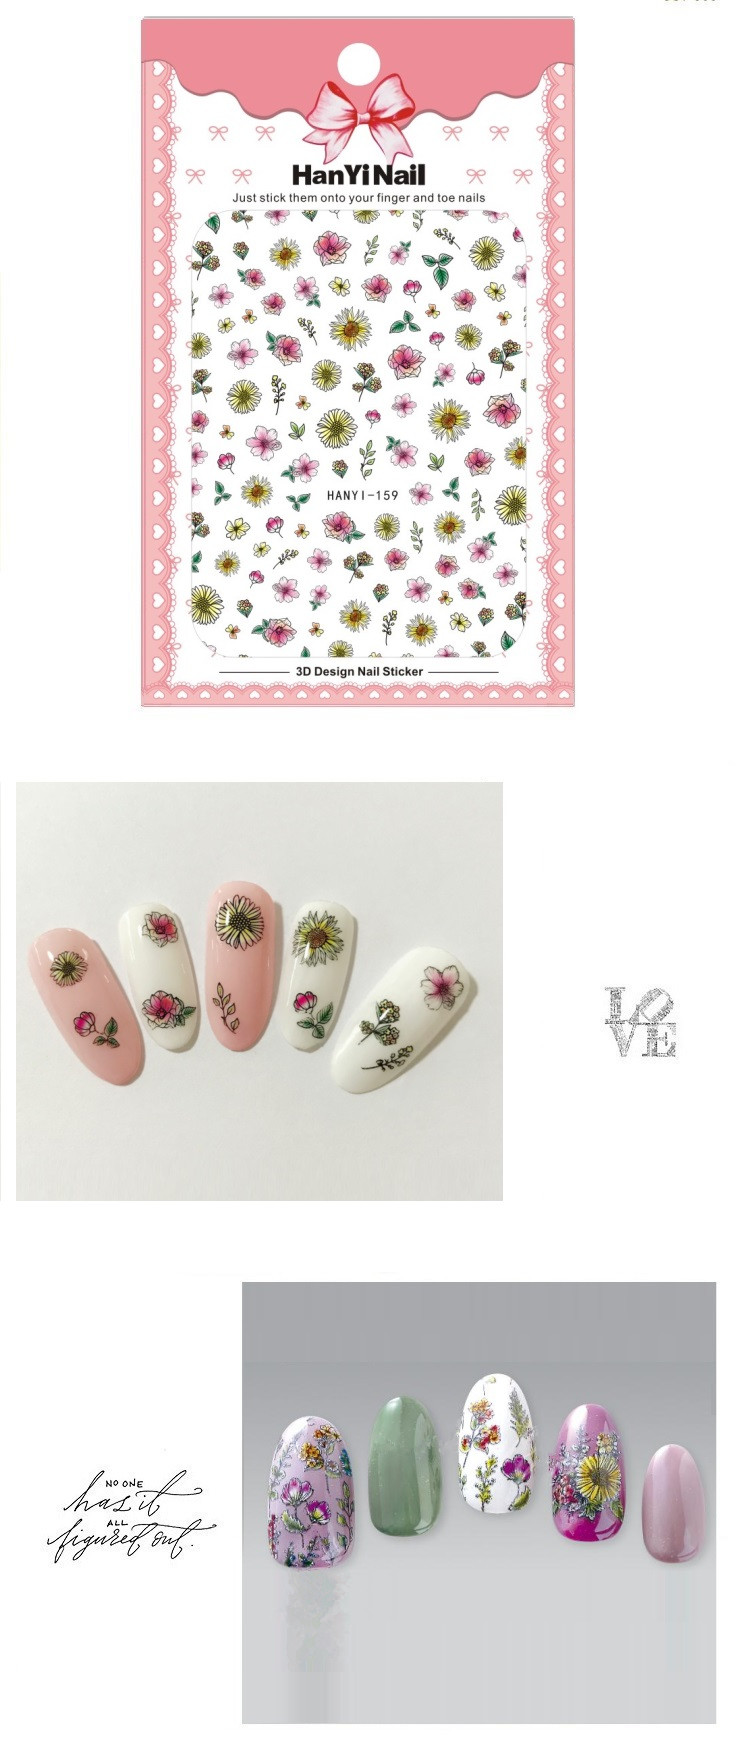 Sticker women manicure nail tip diy decoration hanyi159